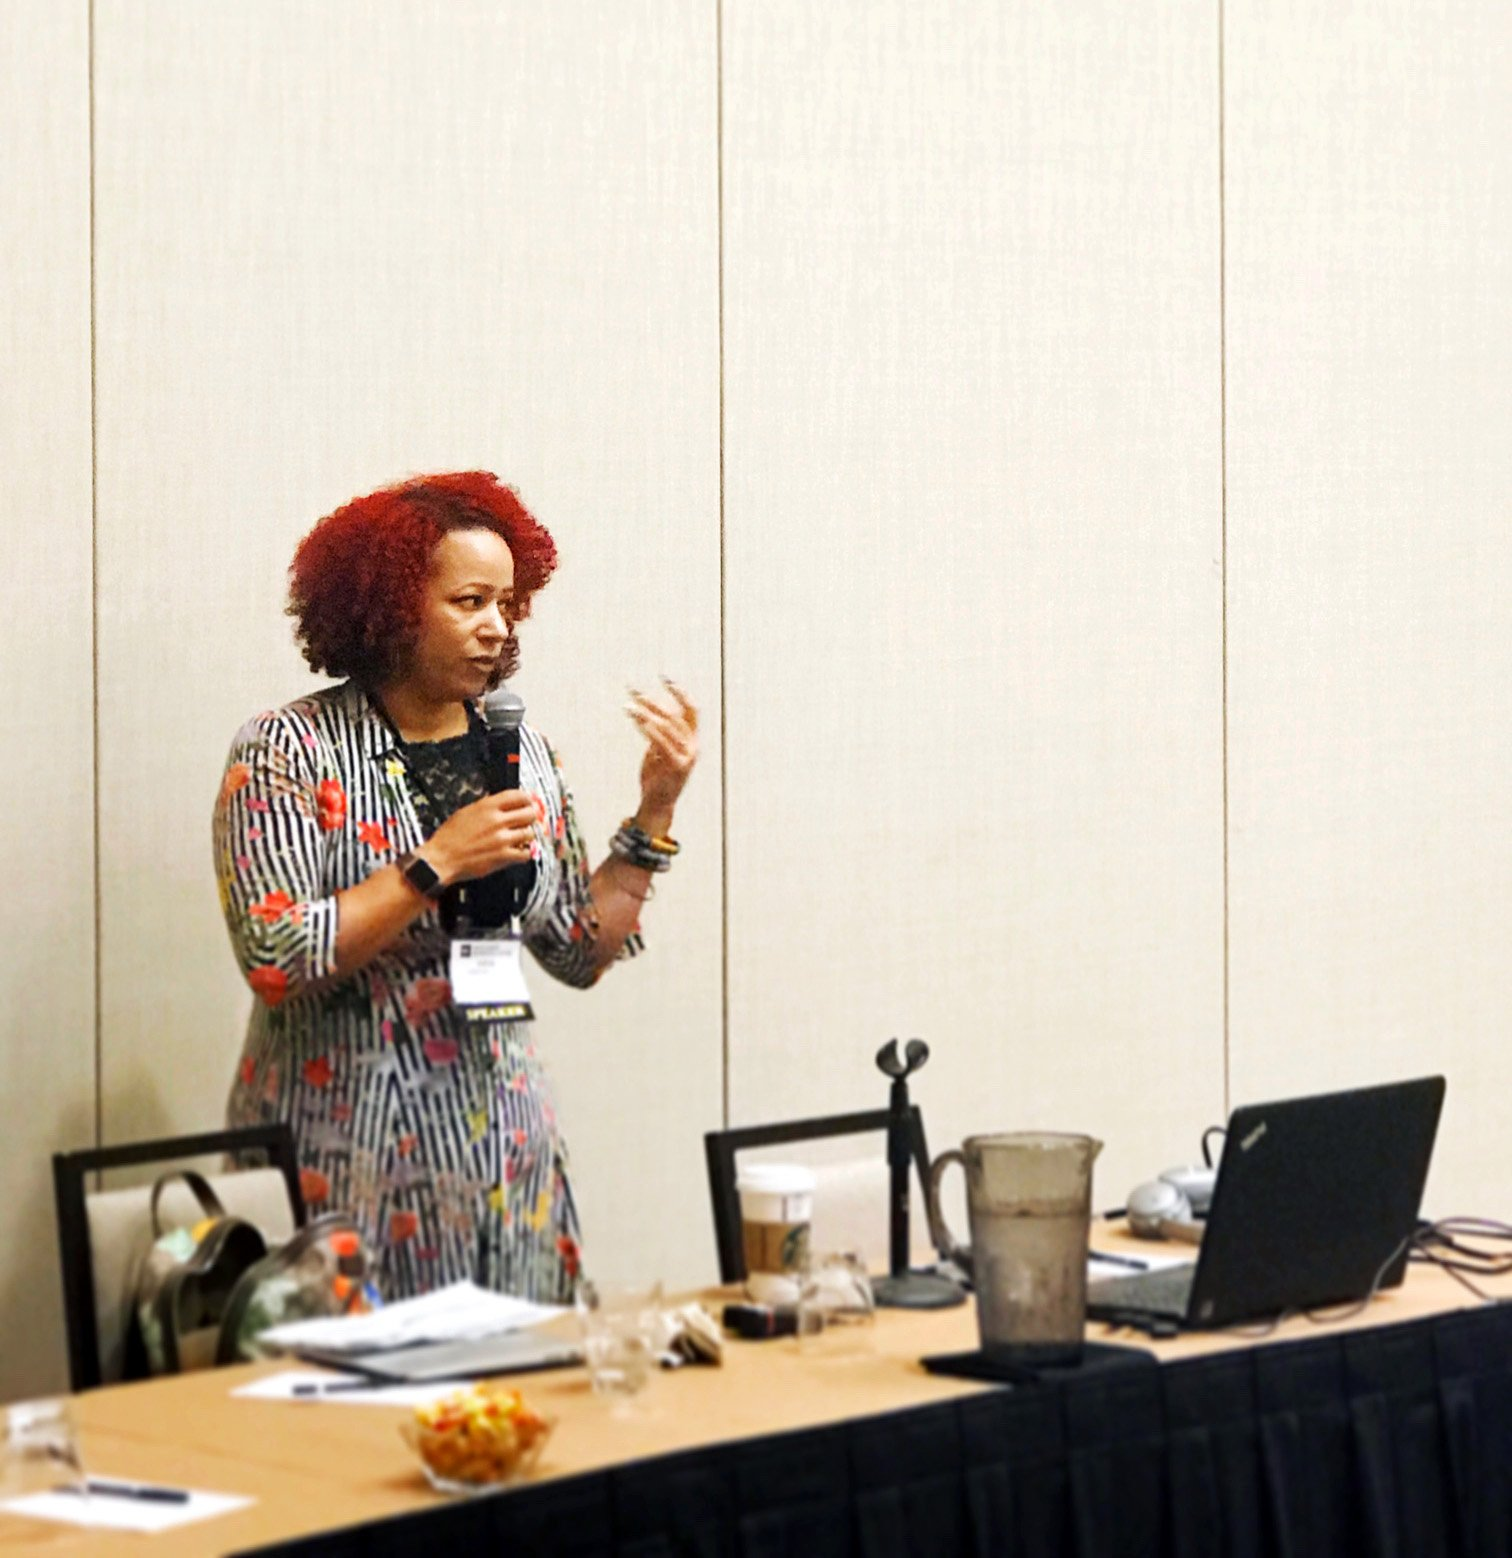 .@nhannahjones on covering race issues: Don't just write about disparities, examine how we got here and who is responsible. #IRE17 https://t.co/XopD6xyIhe